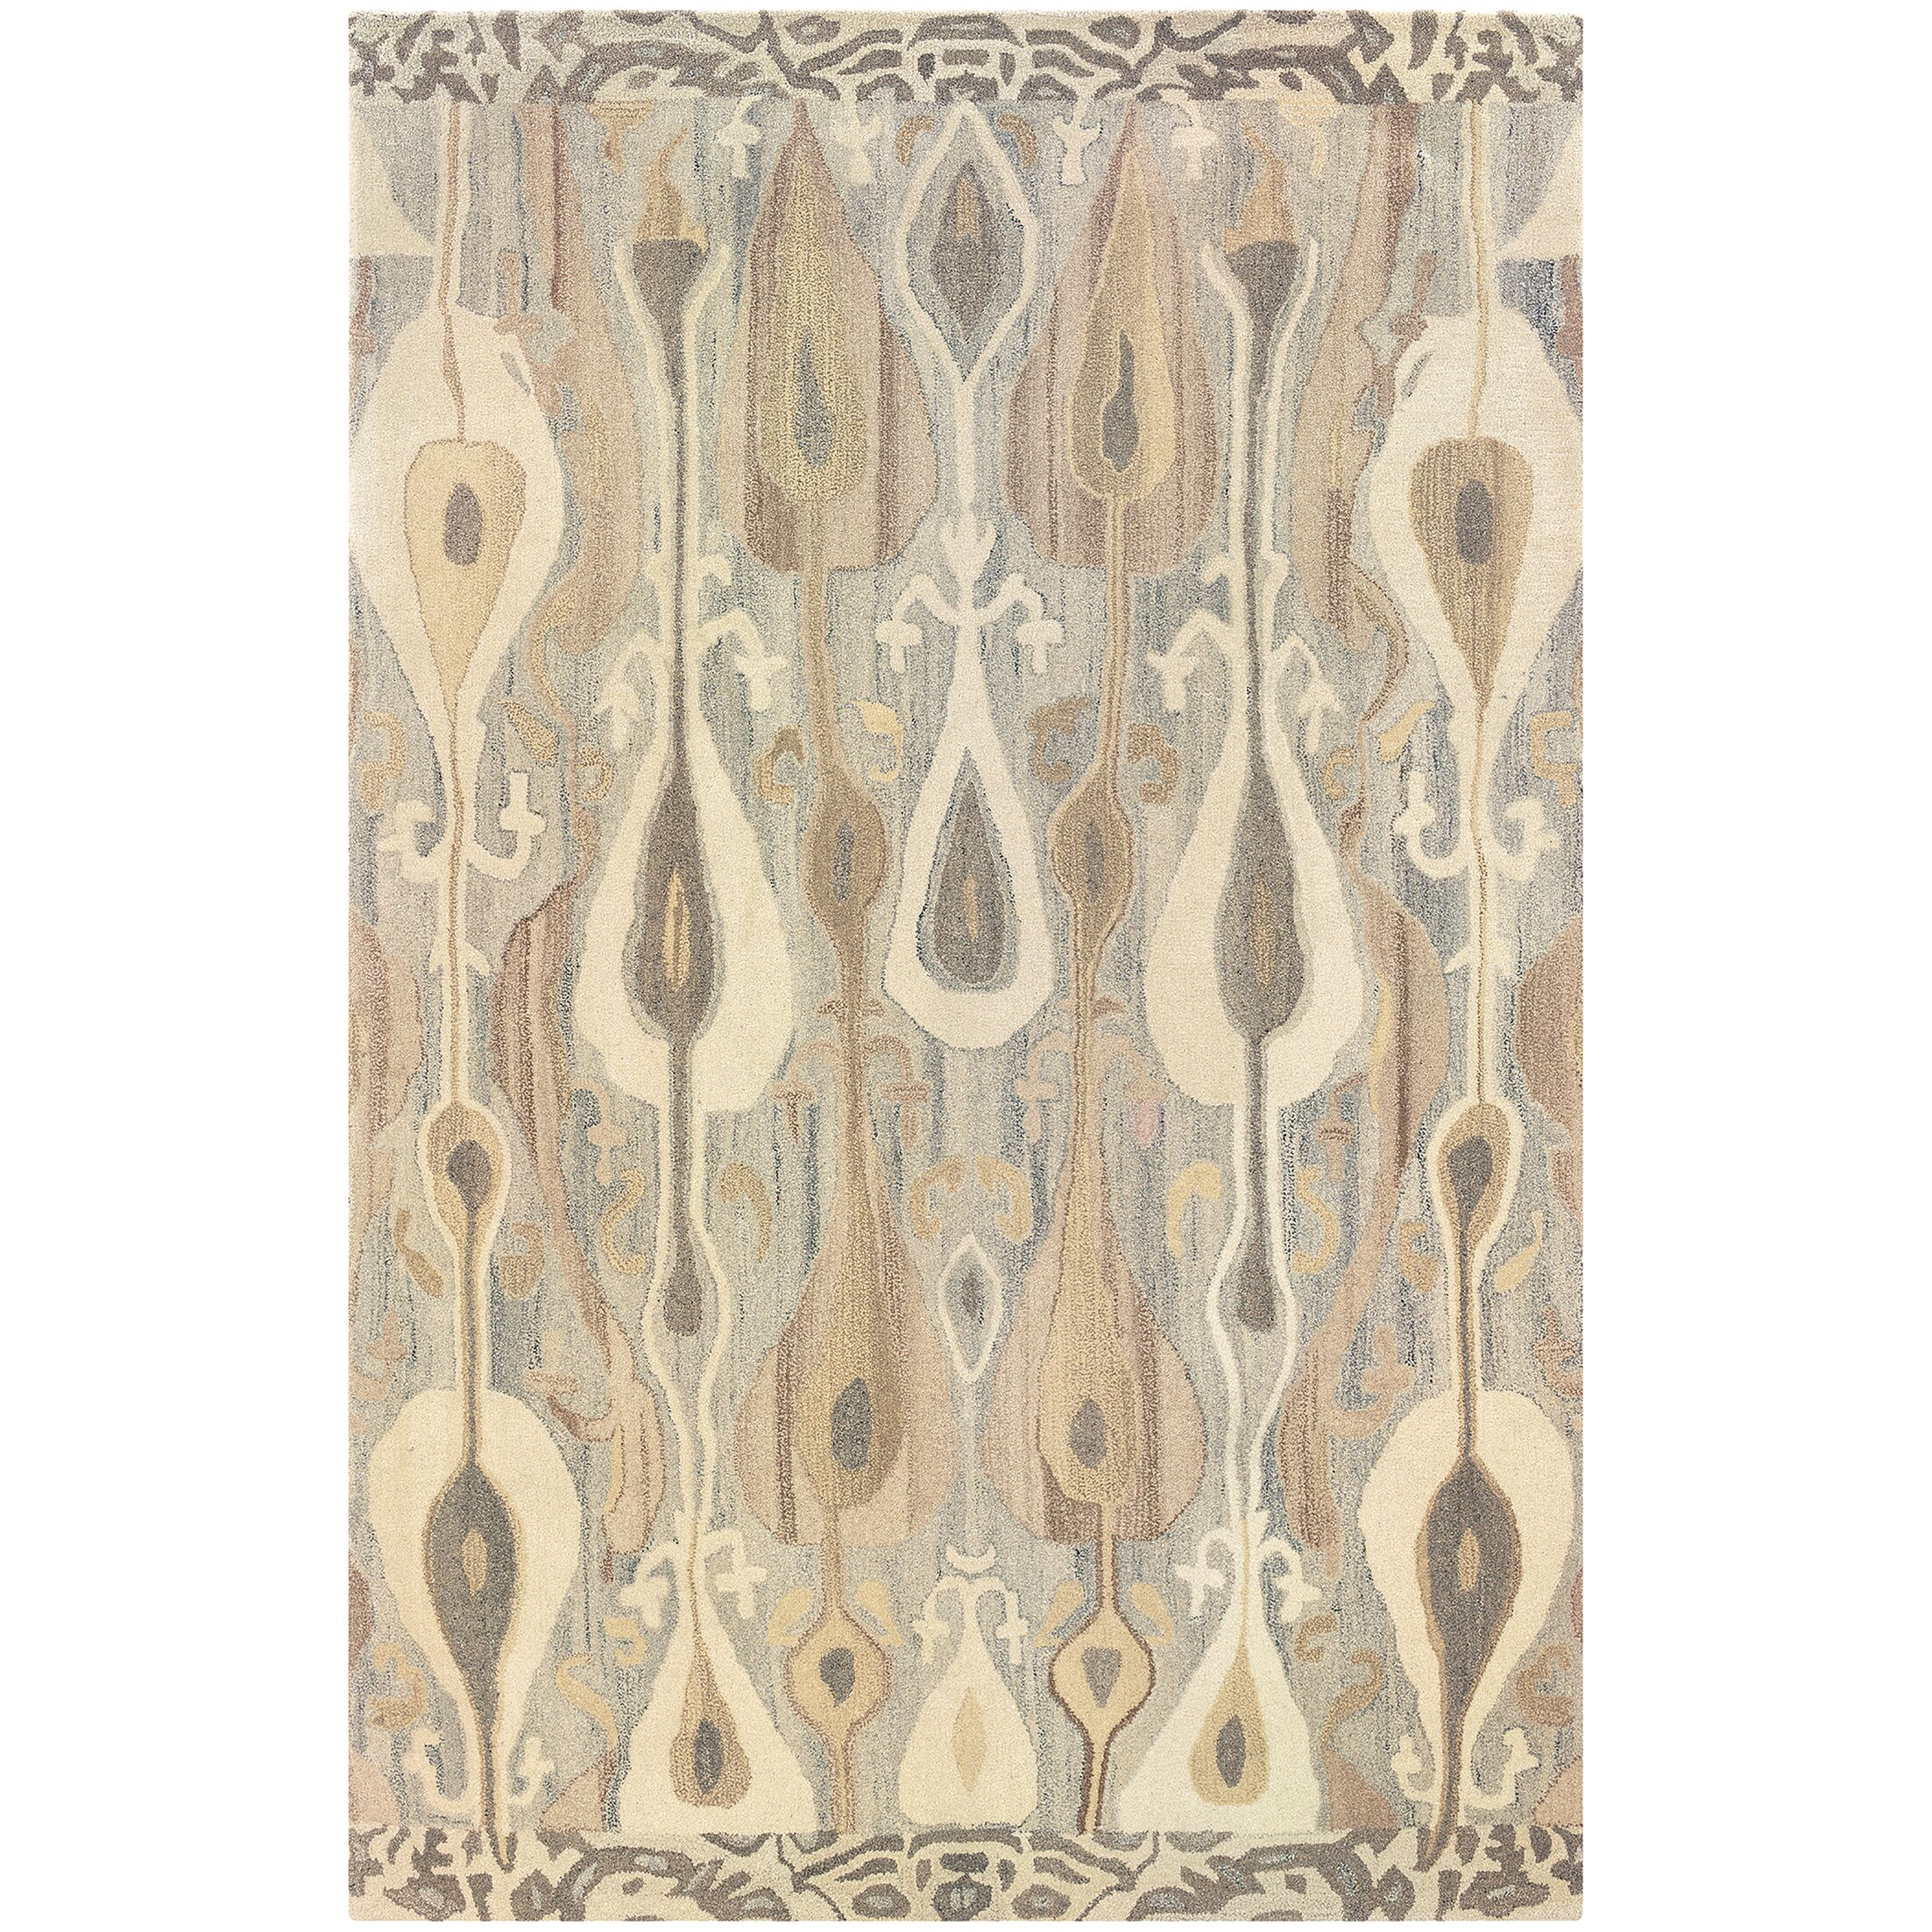 Mireille Hand-Woven Green/Beige Area Rug Rug Size: Rectangle 8' x 10'